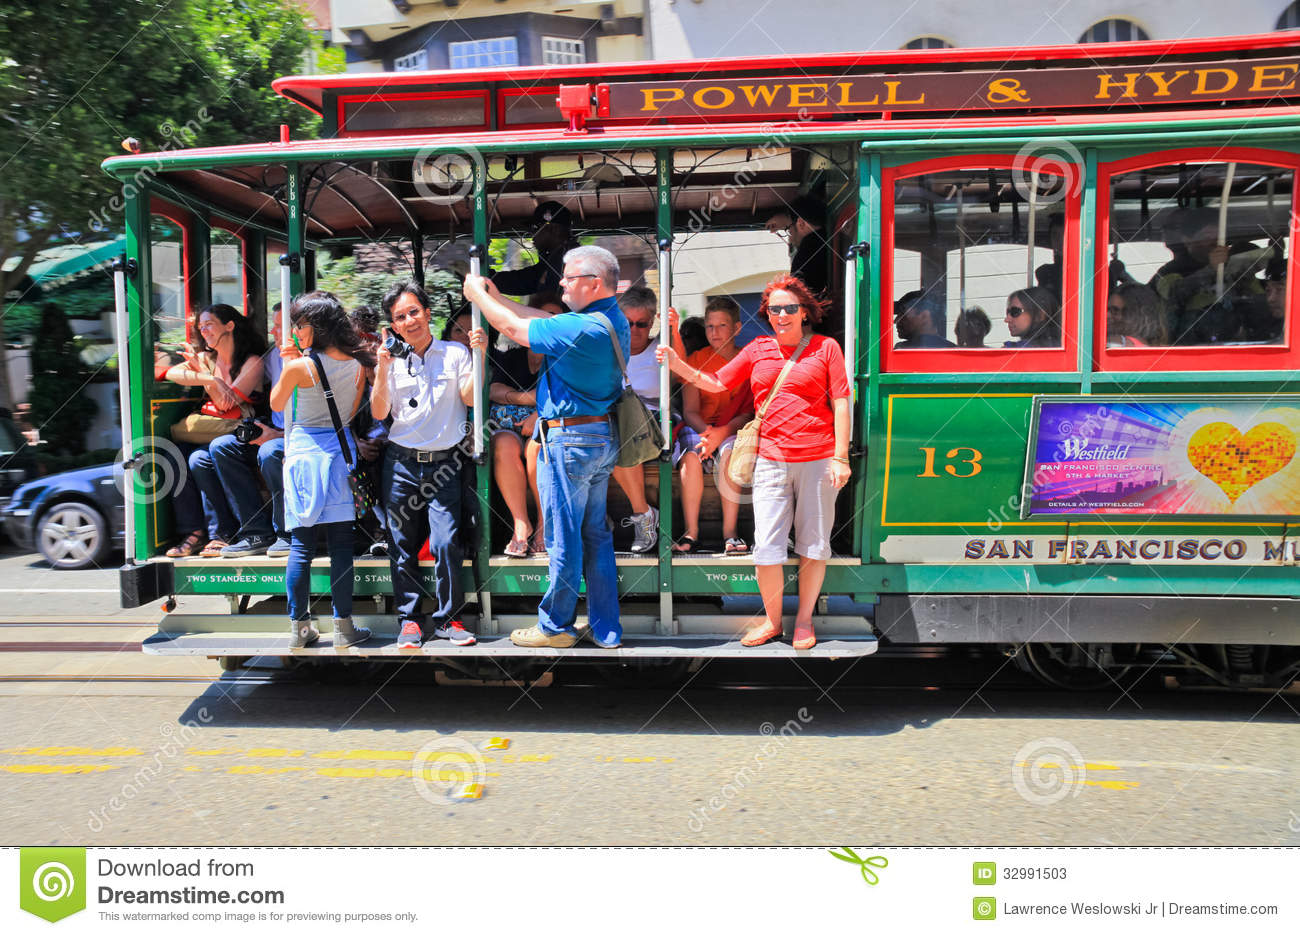 San Francisco Powell Hyde Cable Car Passengers Editorial Stock